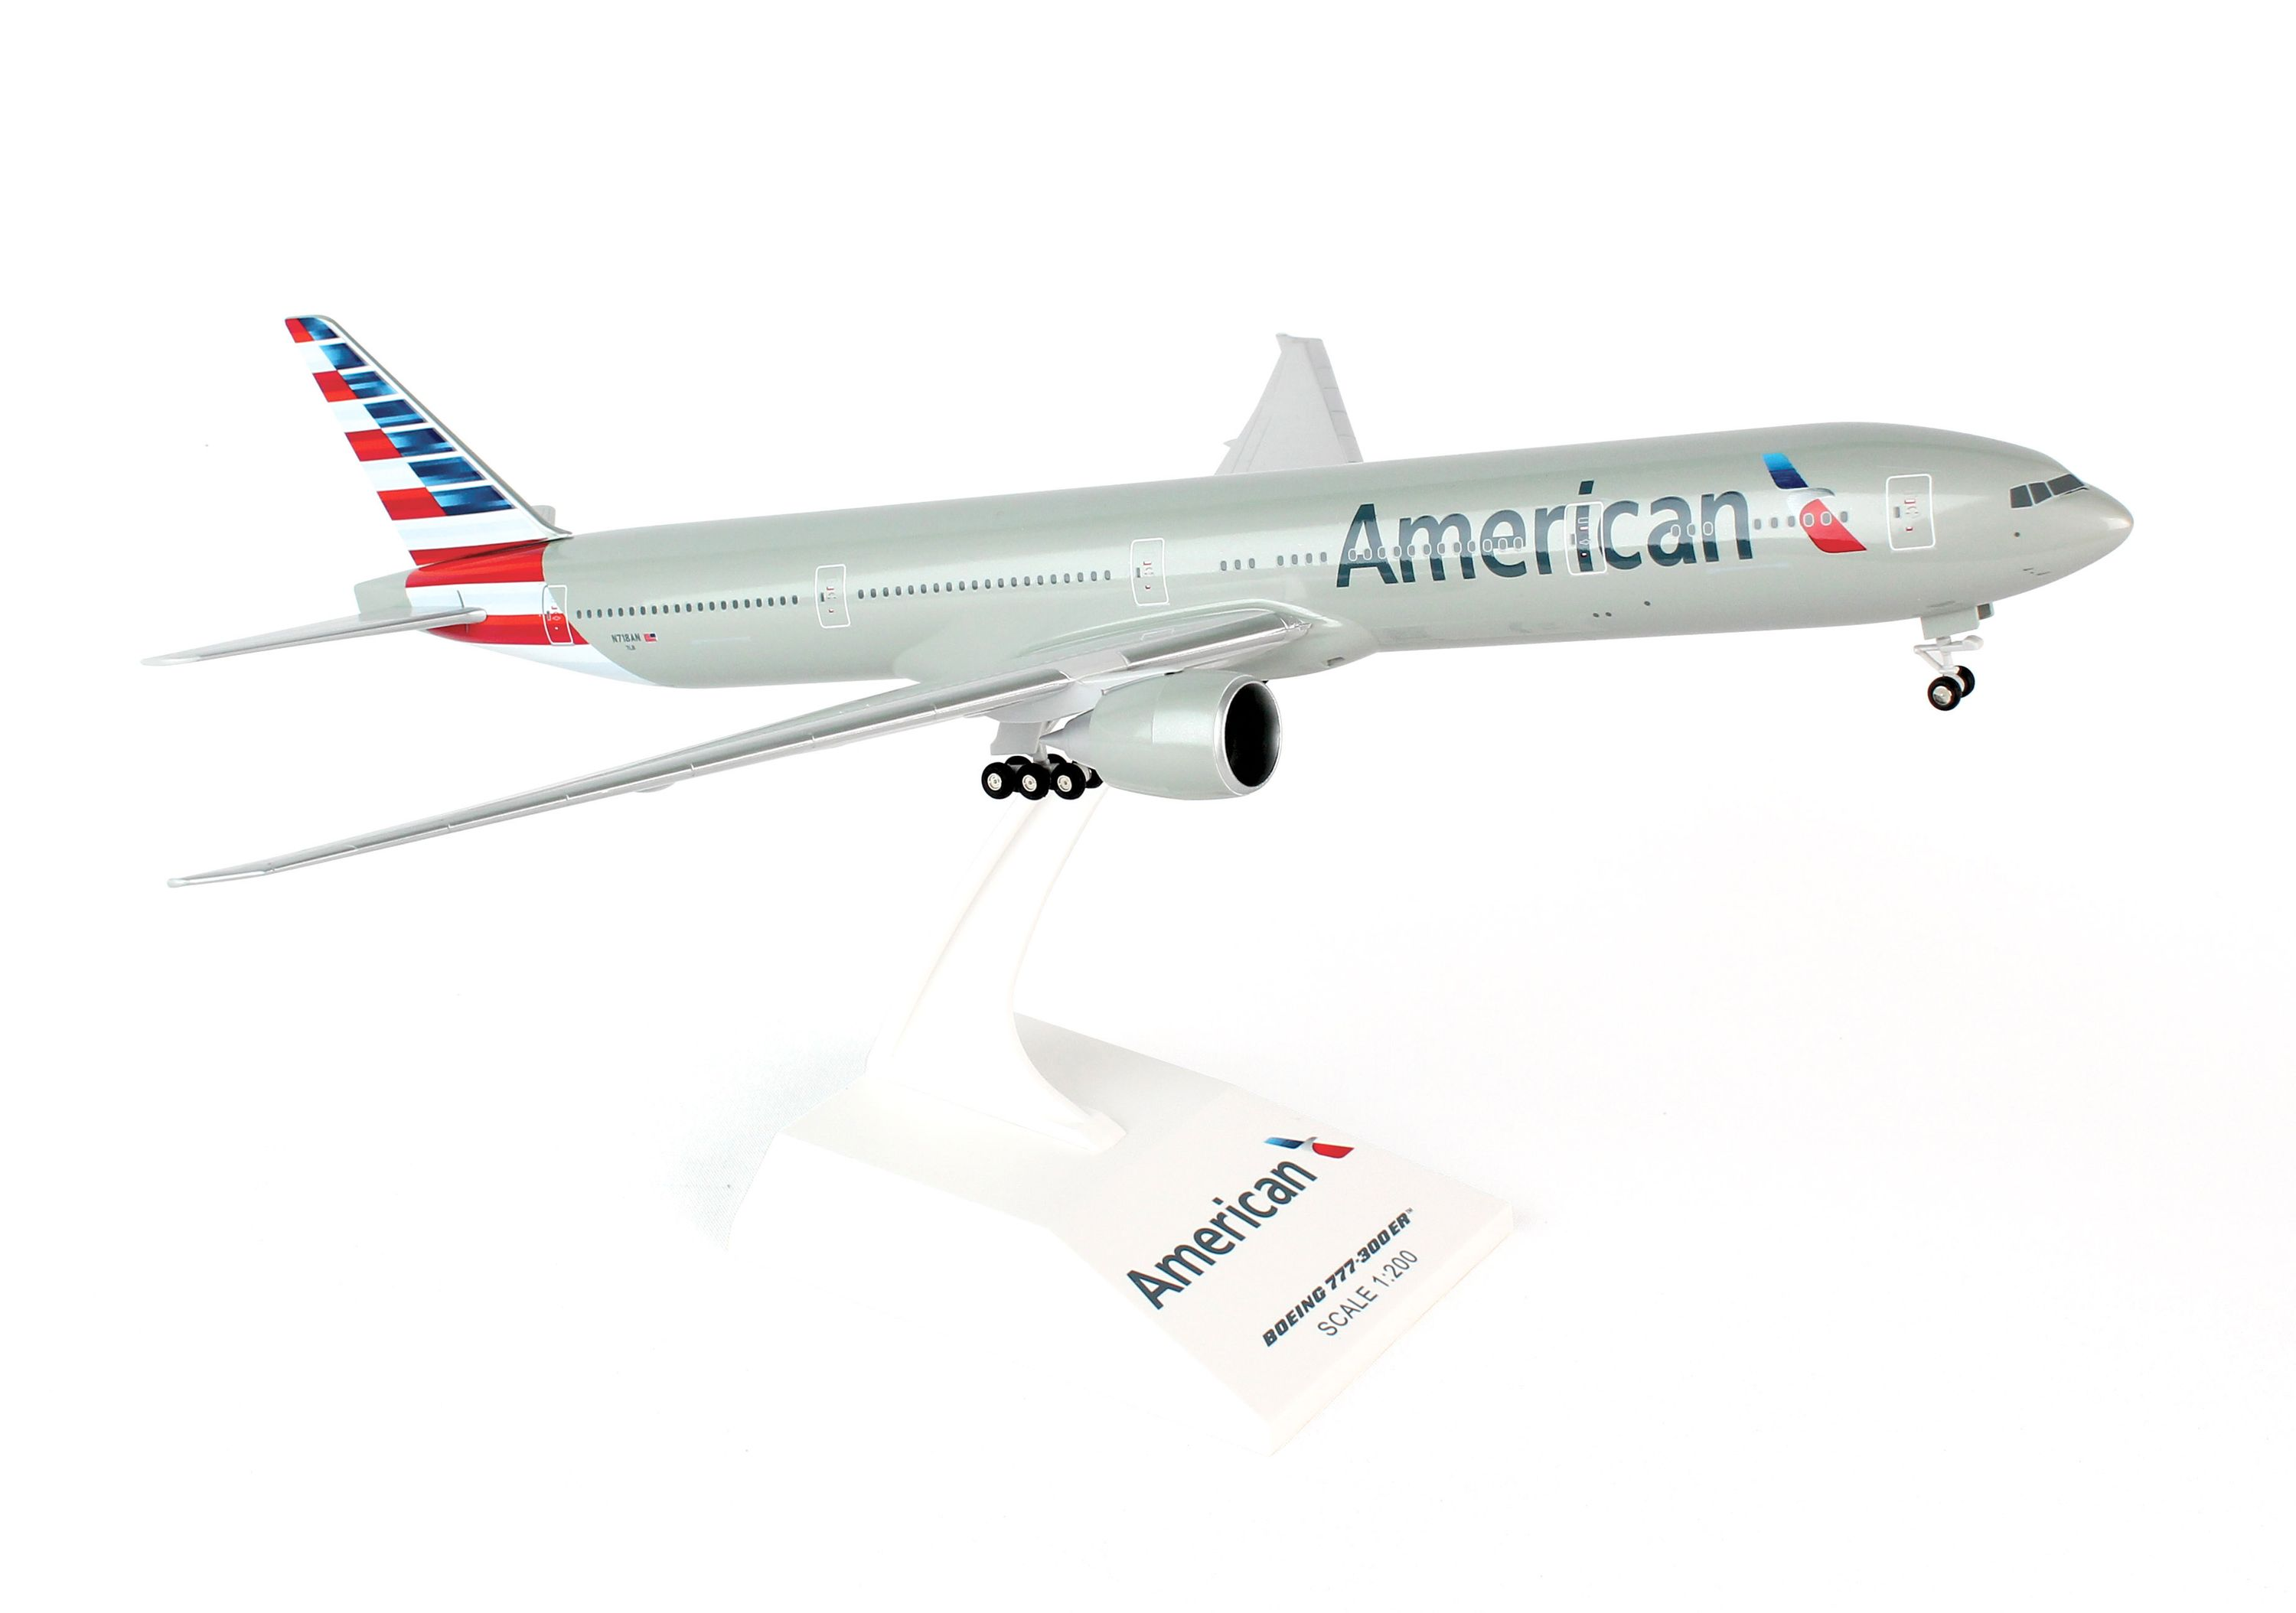 SkyMarks Flugzeugmodell American Airlines Boeing 777-300 Maßstab 1:200